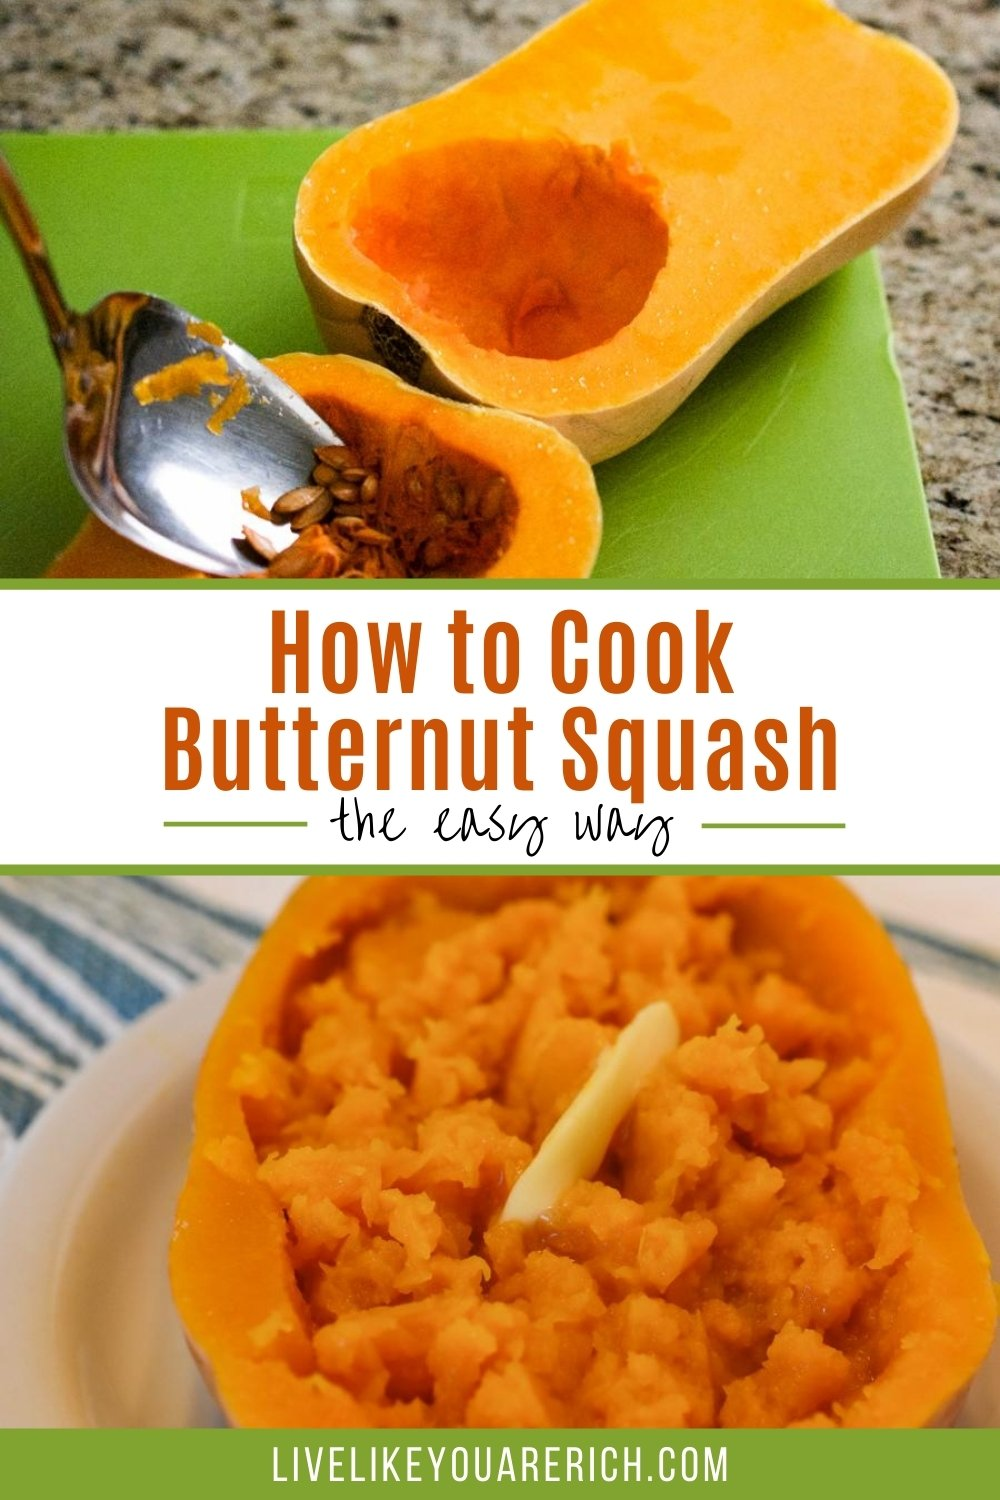 How to Cook Butternut Squash—the Easy Way. The instructions are very simple and it only took a few minutes to prepare before we cooked it (over an hour). Cooking the butternut squash as we did makes it very soft and moist. It is also healthy, rich in fiber and vitamin A which is good for the eyes.